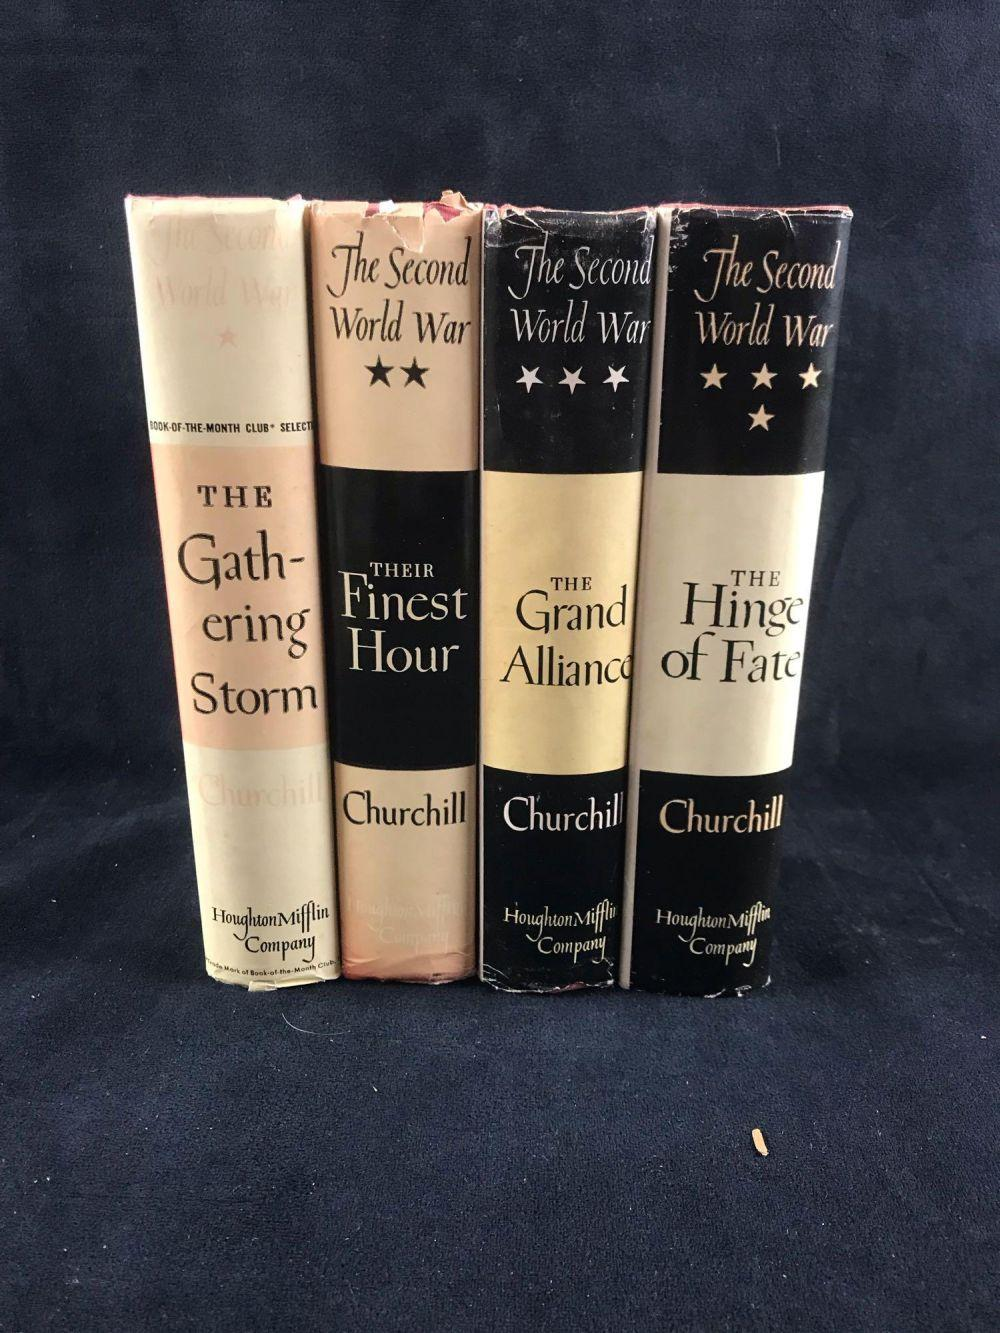 Lot 589: The Second World War 4 Volumes By Winston Churchill